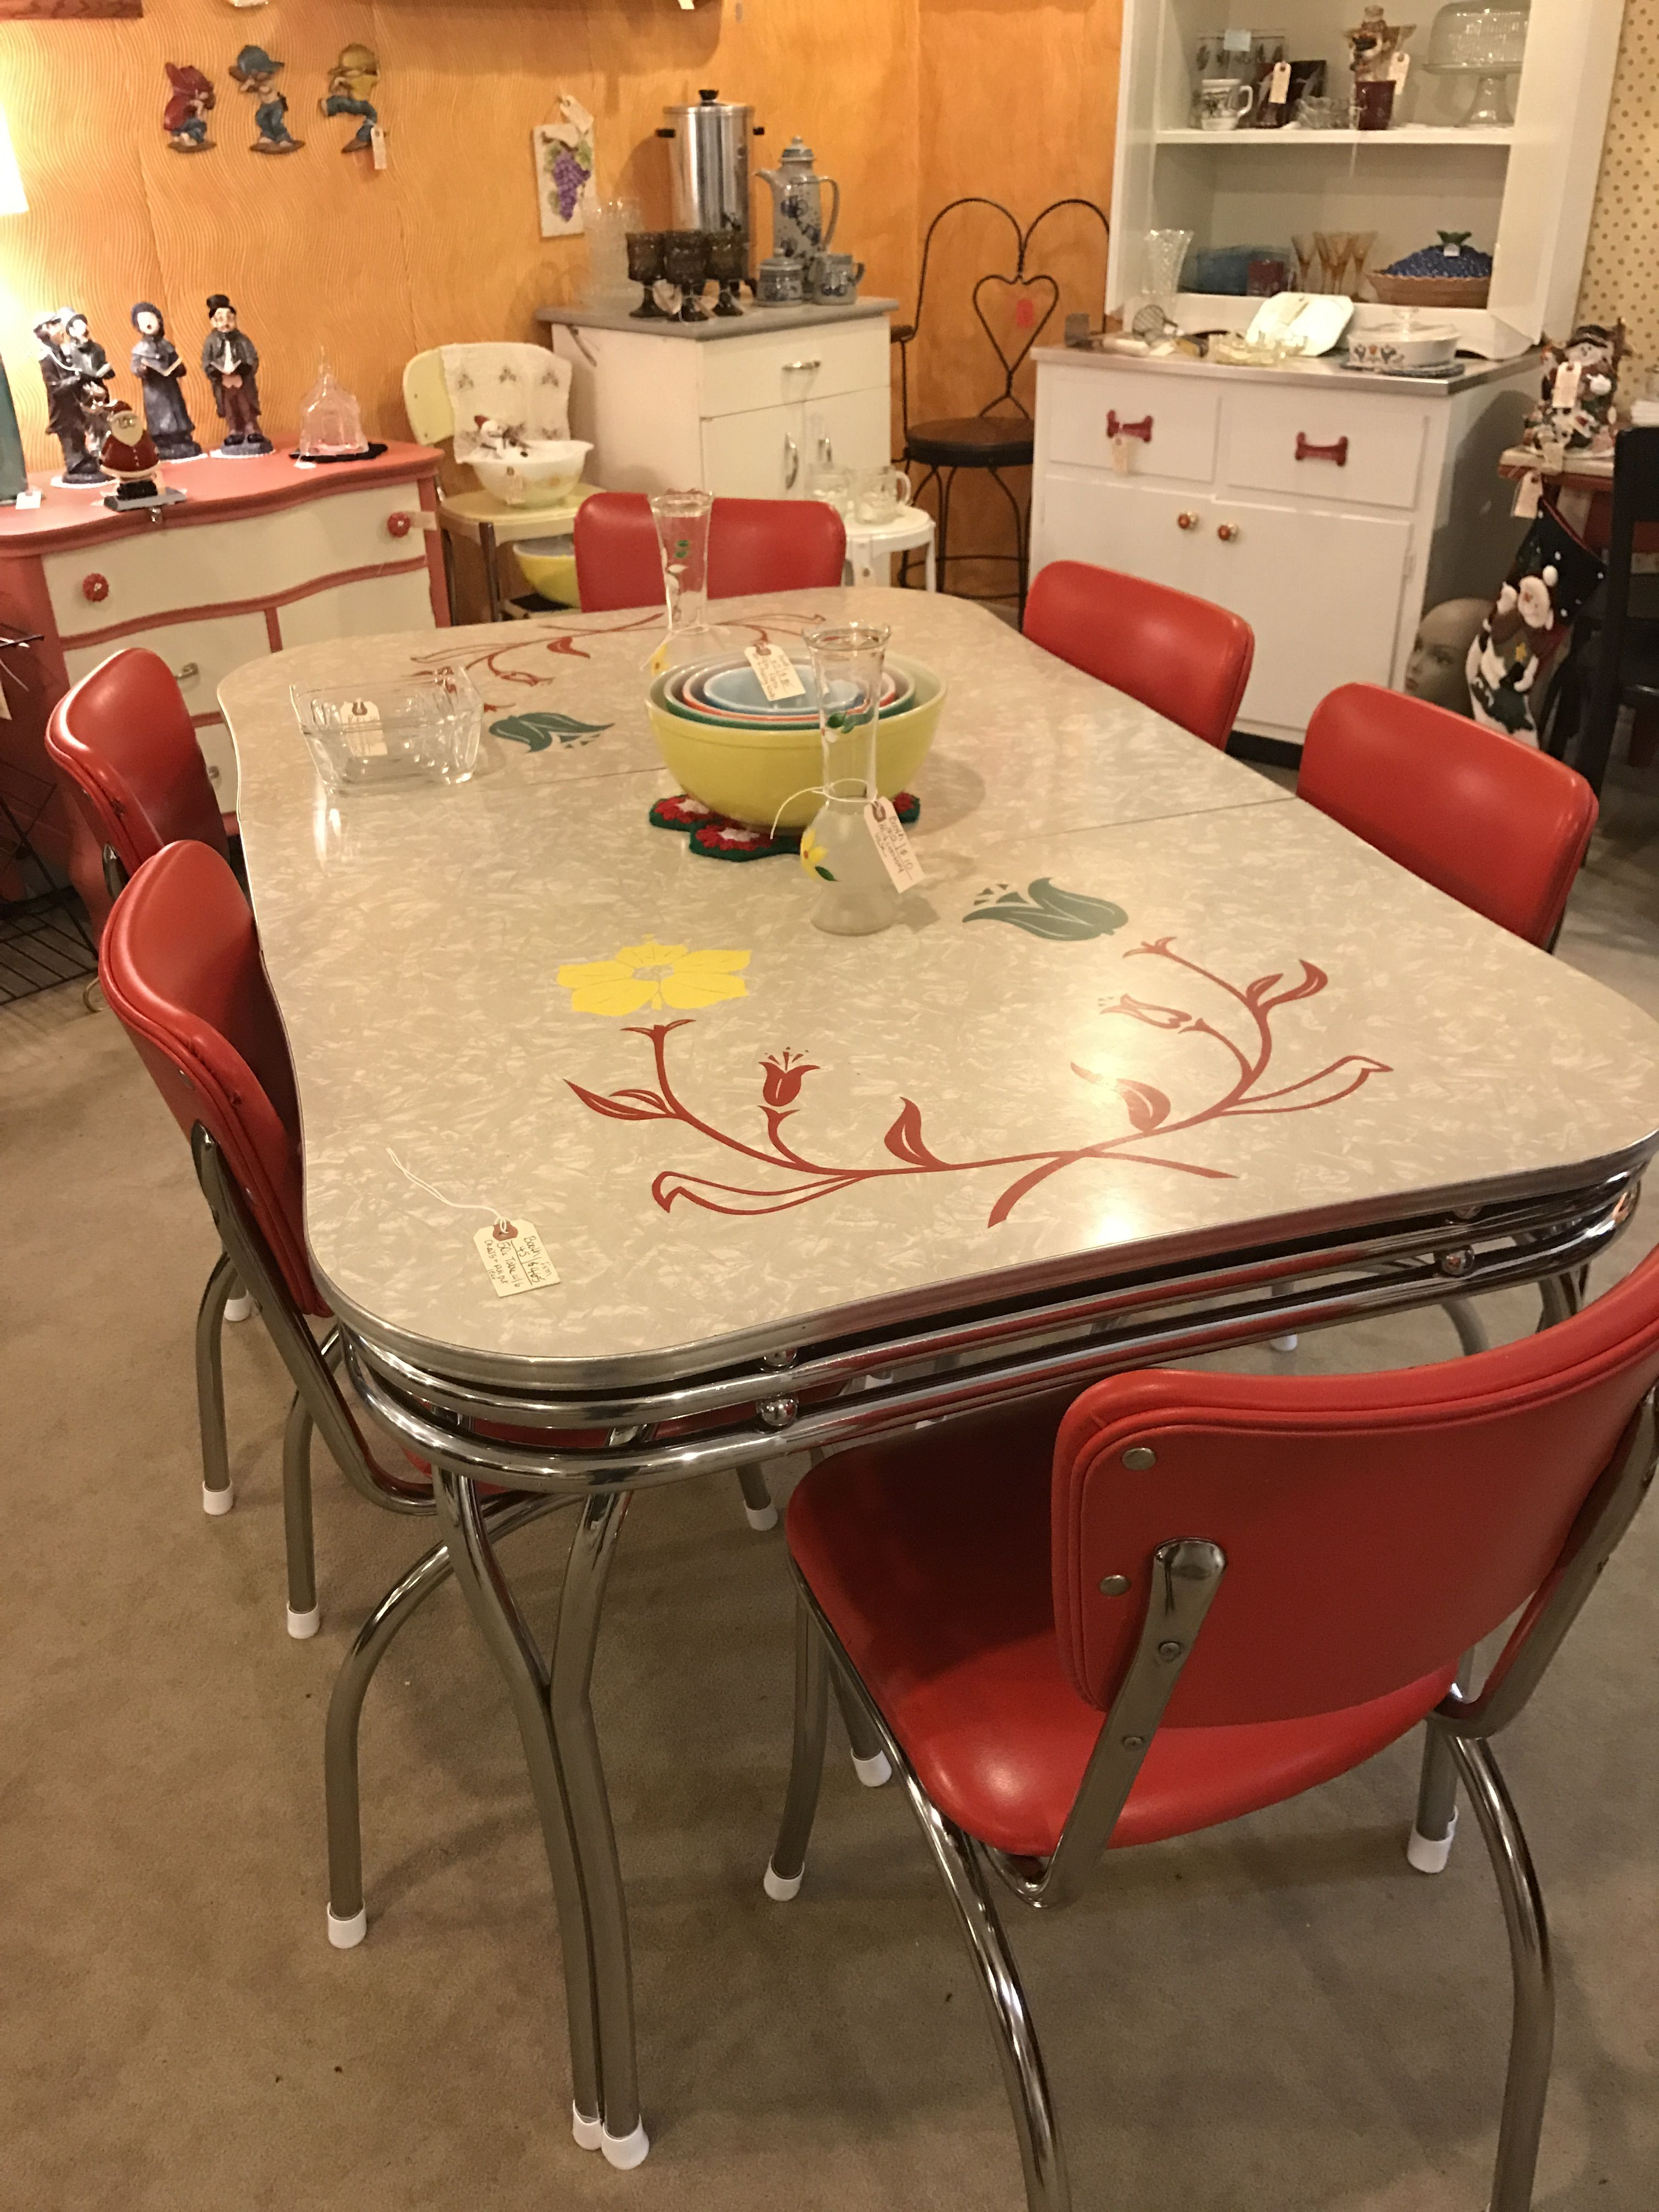 Beautiful vintage Formica table | Formica Tables in 2019 ...